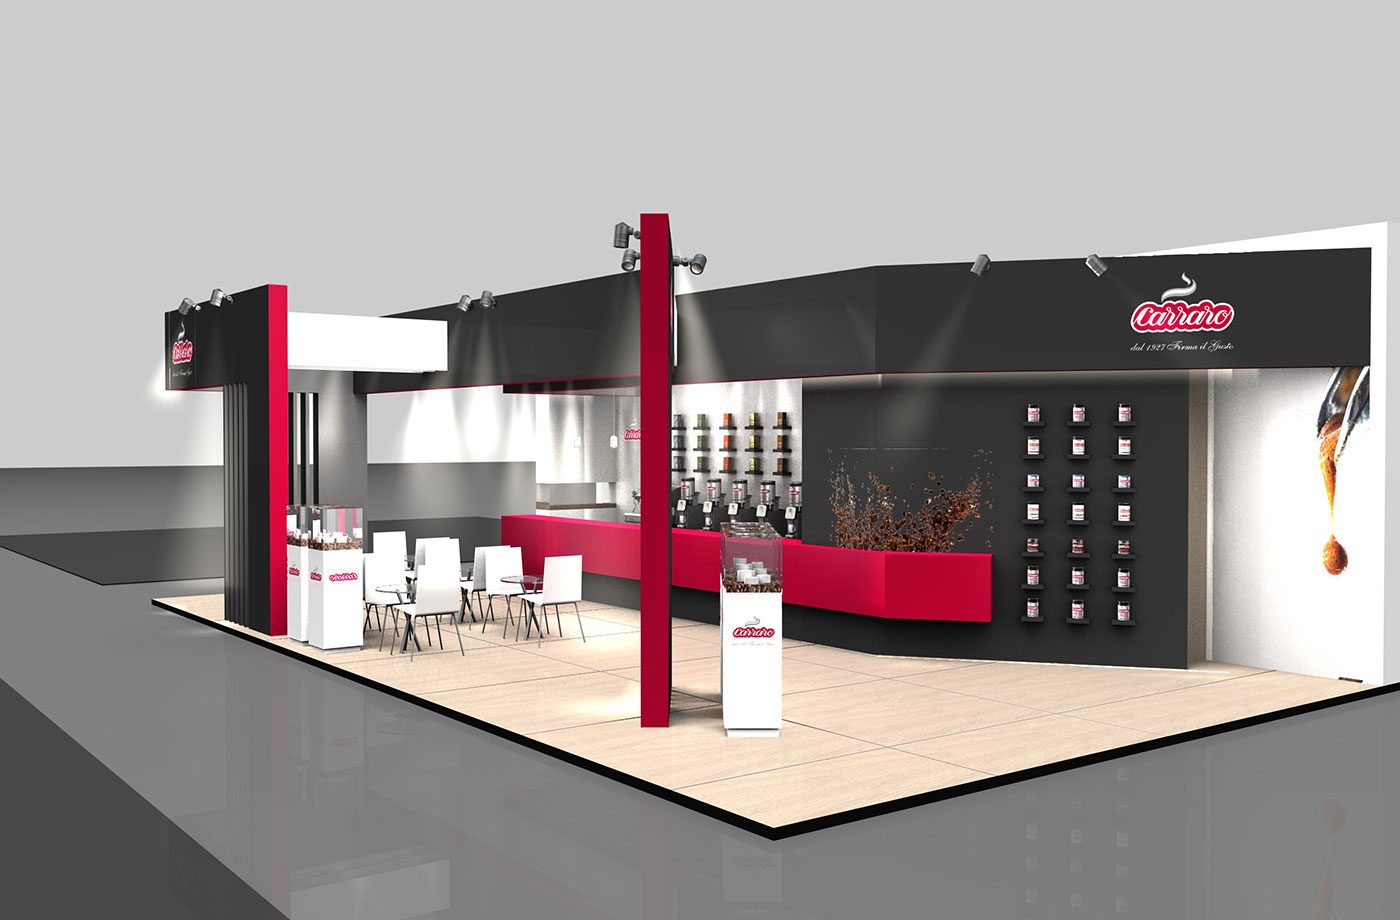 Exhibition Stand Projects : CaffÈ carraro exhibition stand